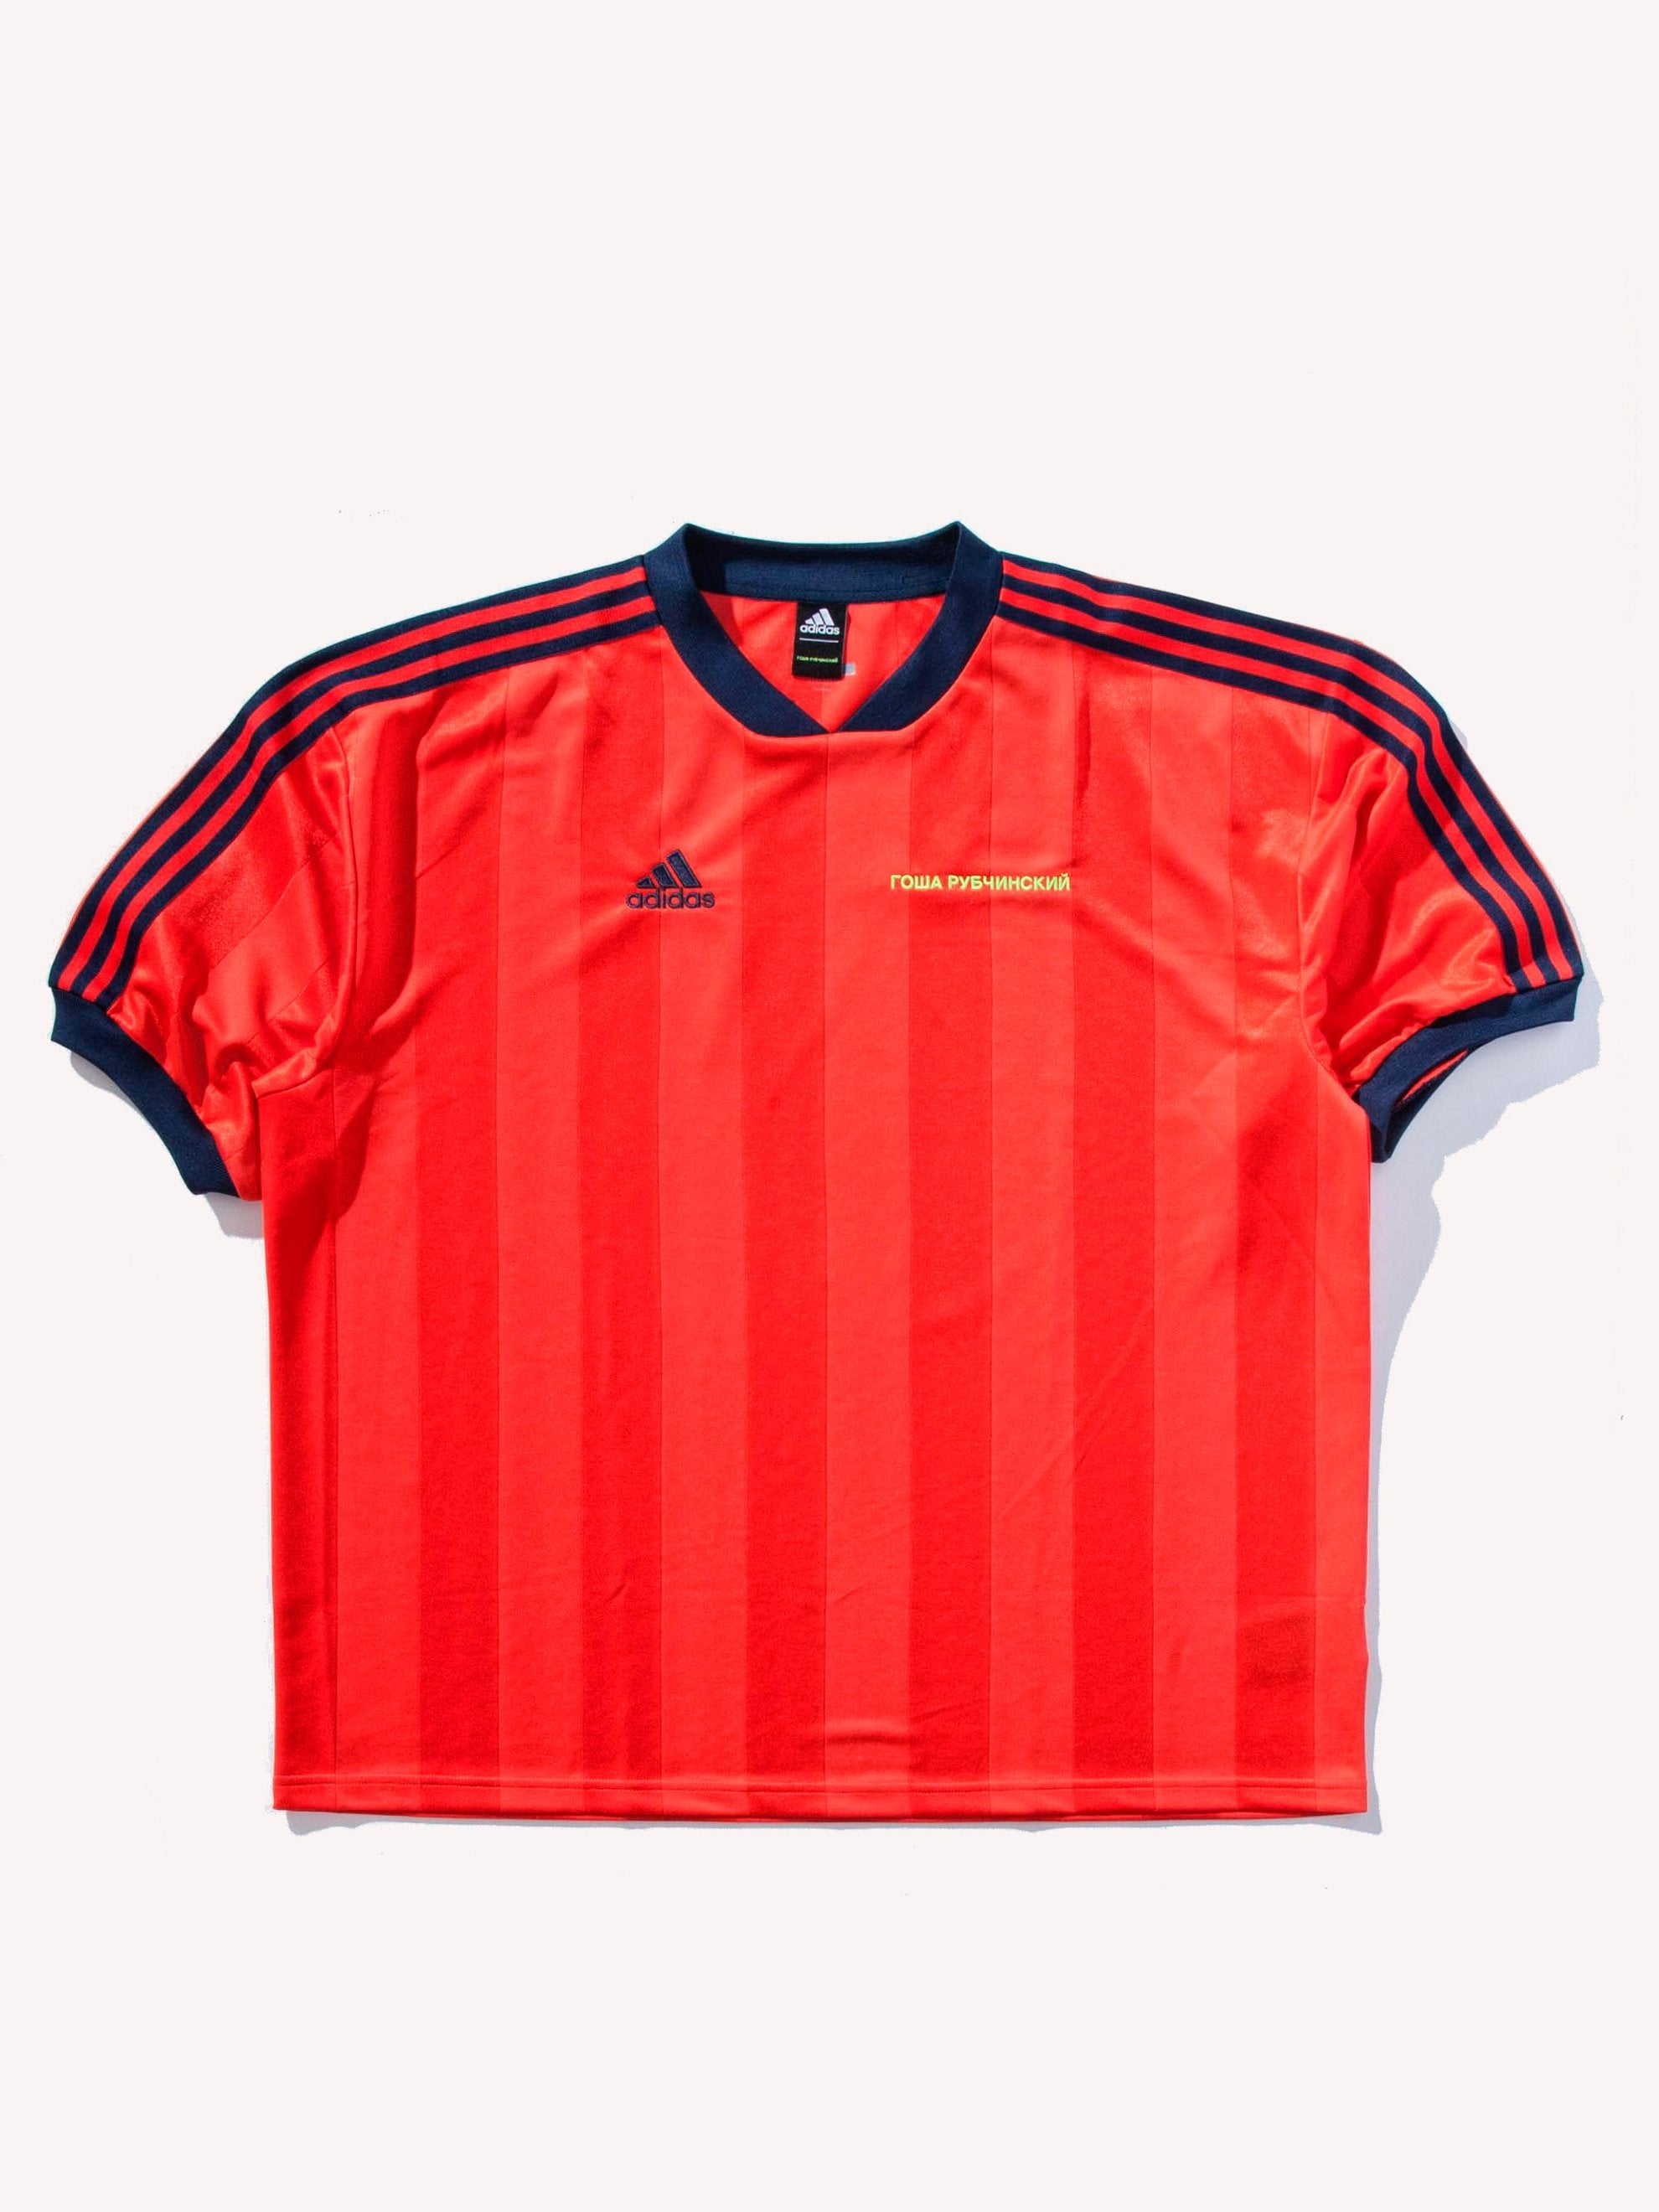 Red/Navy Stripes Adidas Soccer Jersey 1